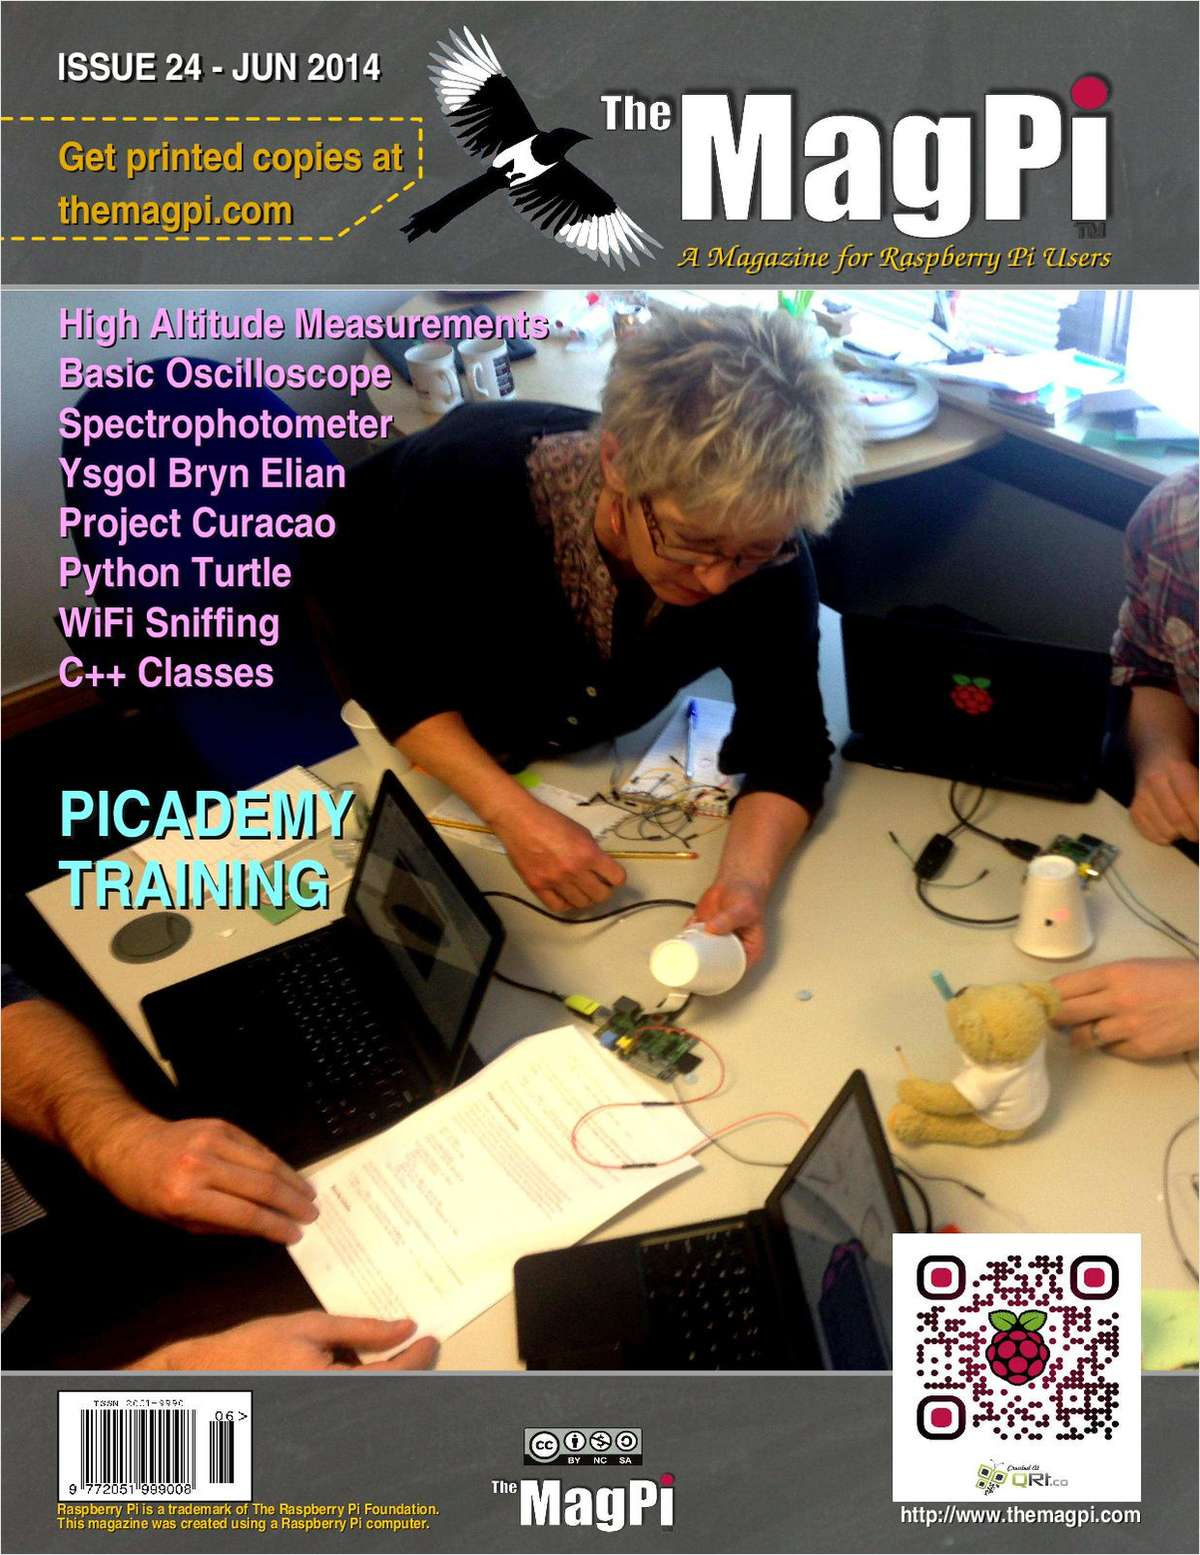 The MagPi Magazine: Picademy Training